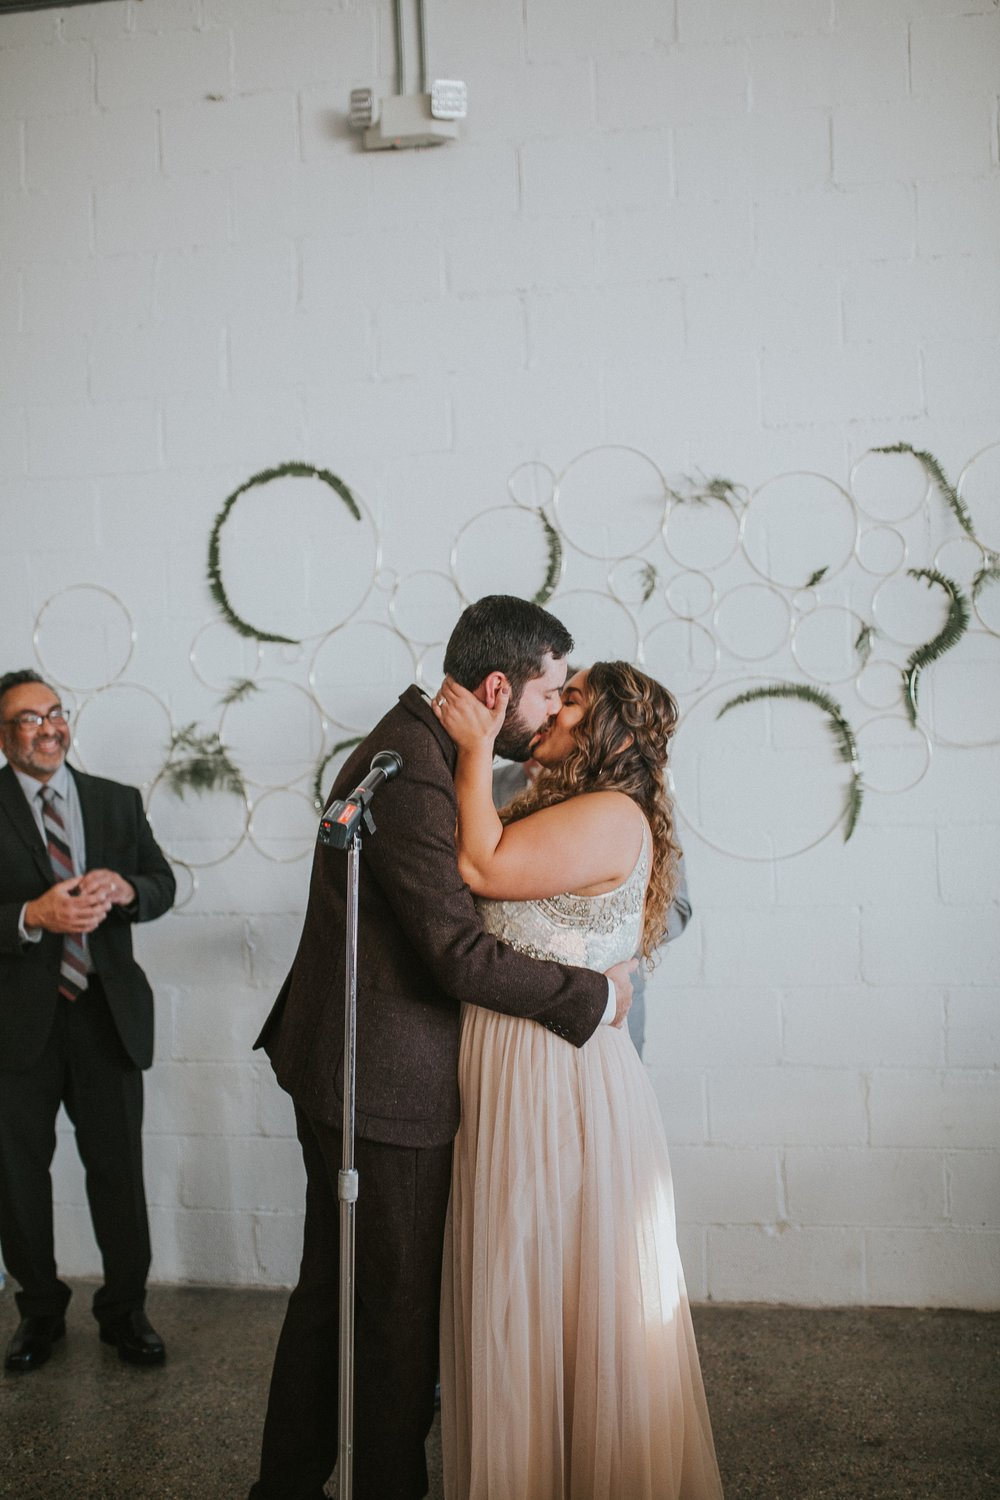 Smooches! These golden rings with greenery set the scene for Hank & Jessica's heartfelt ceremony.